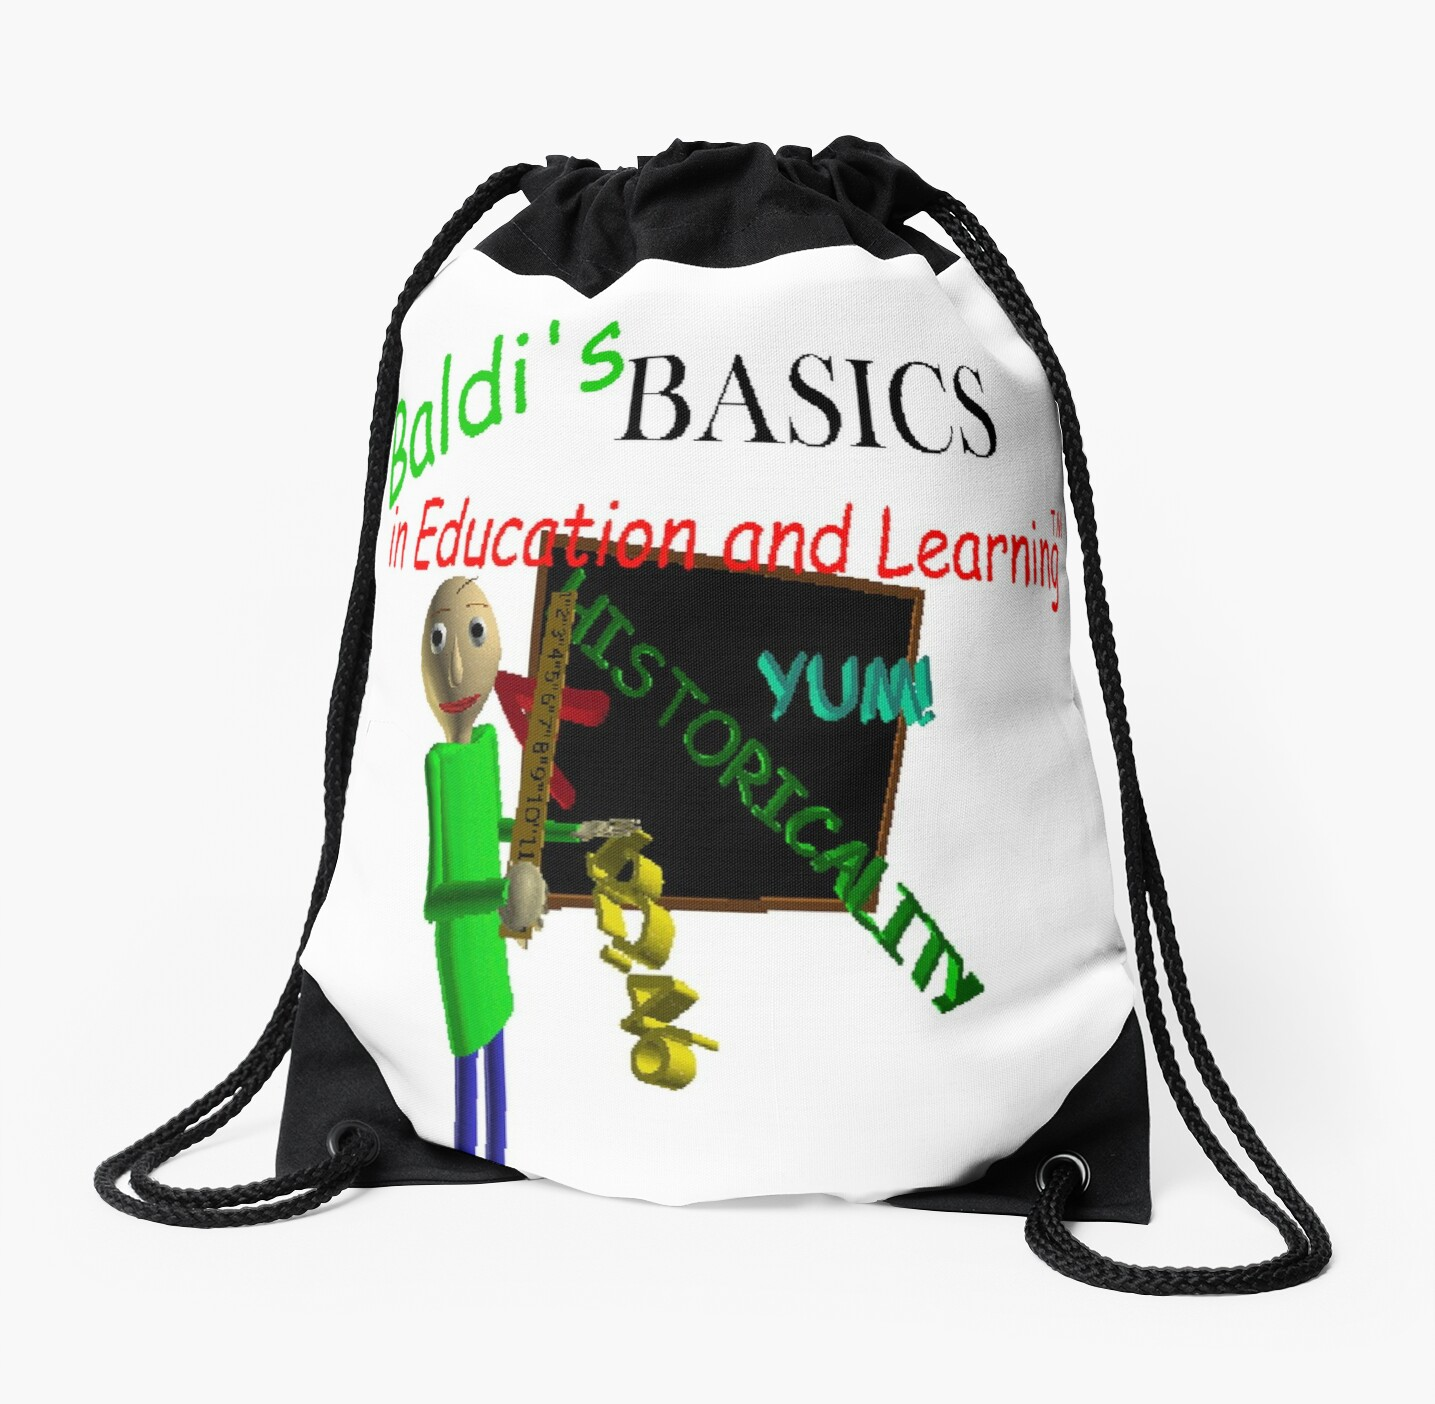 Baldi's Basics in Education and Learning by ImmortalFoxy